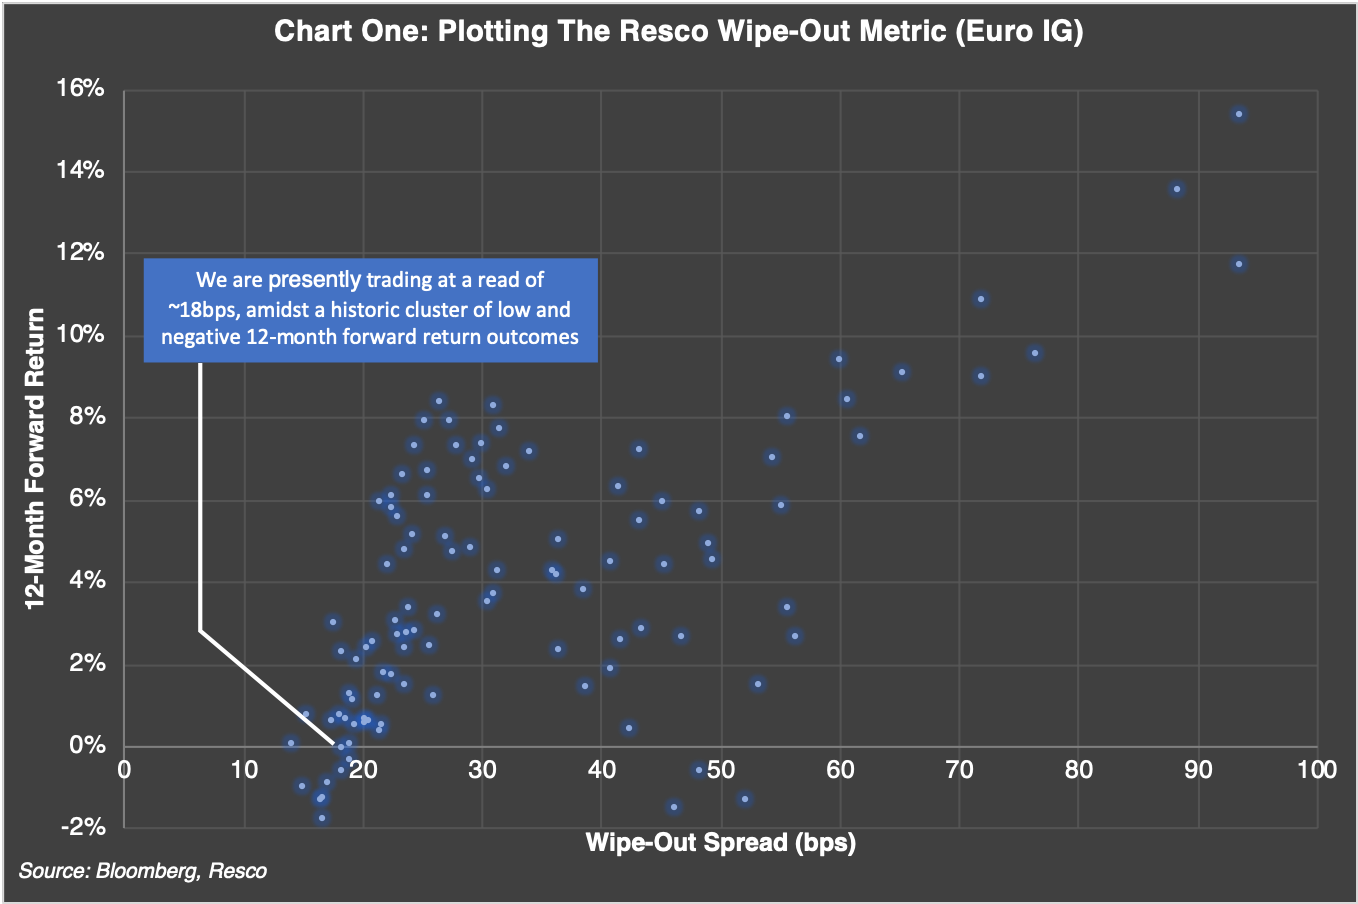 The Resco Wipe-Out Metric